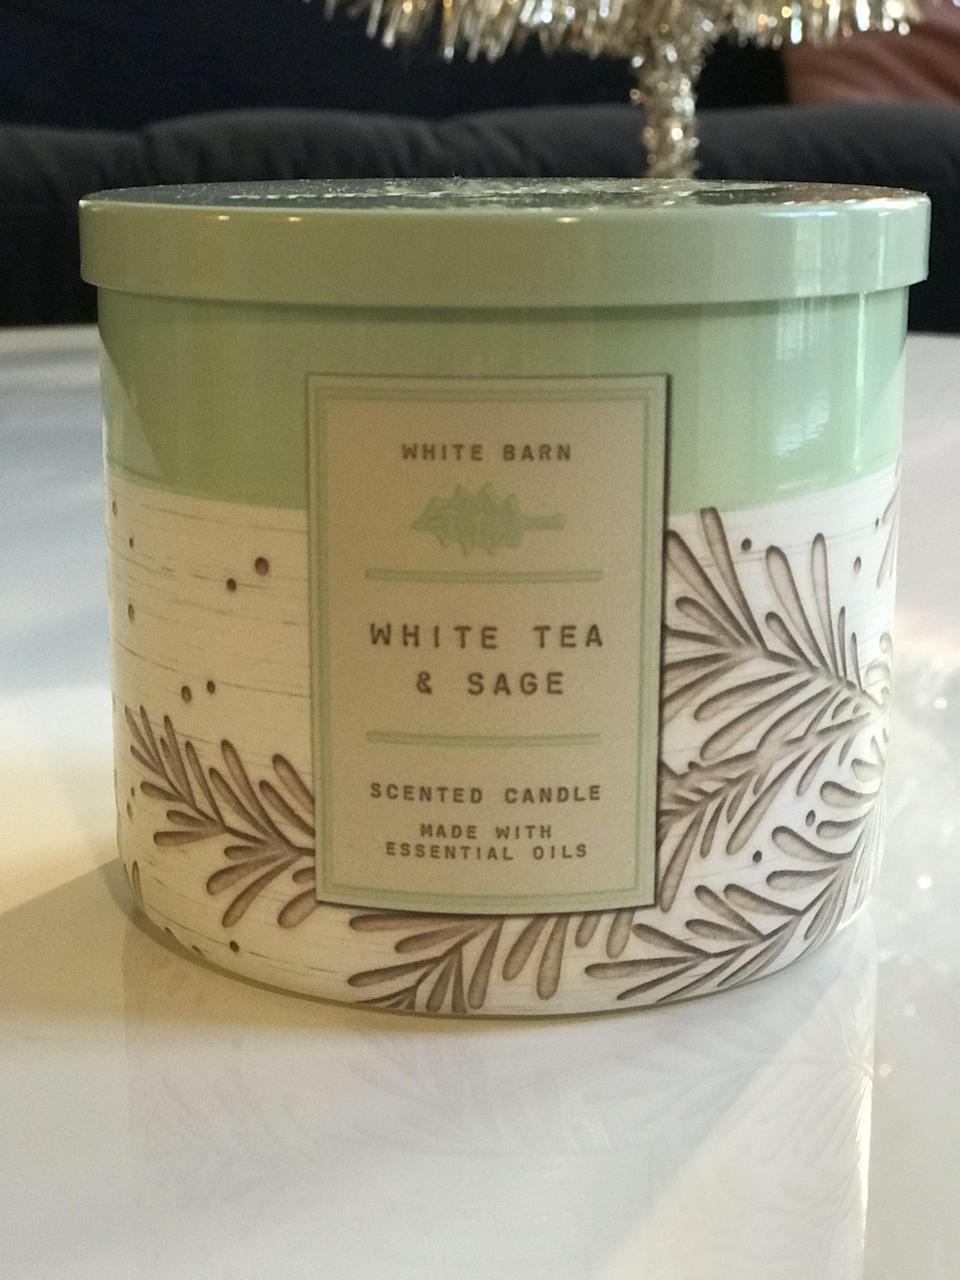 <p><span>White Tea & Sage 3-Wick Candle</span> ($15, originally $25)</p> <p><strong>What It Smells Like:</strong> Fresh and clean, a good one for January.</p>